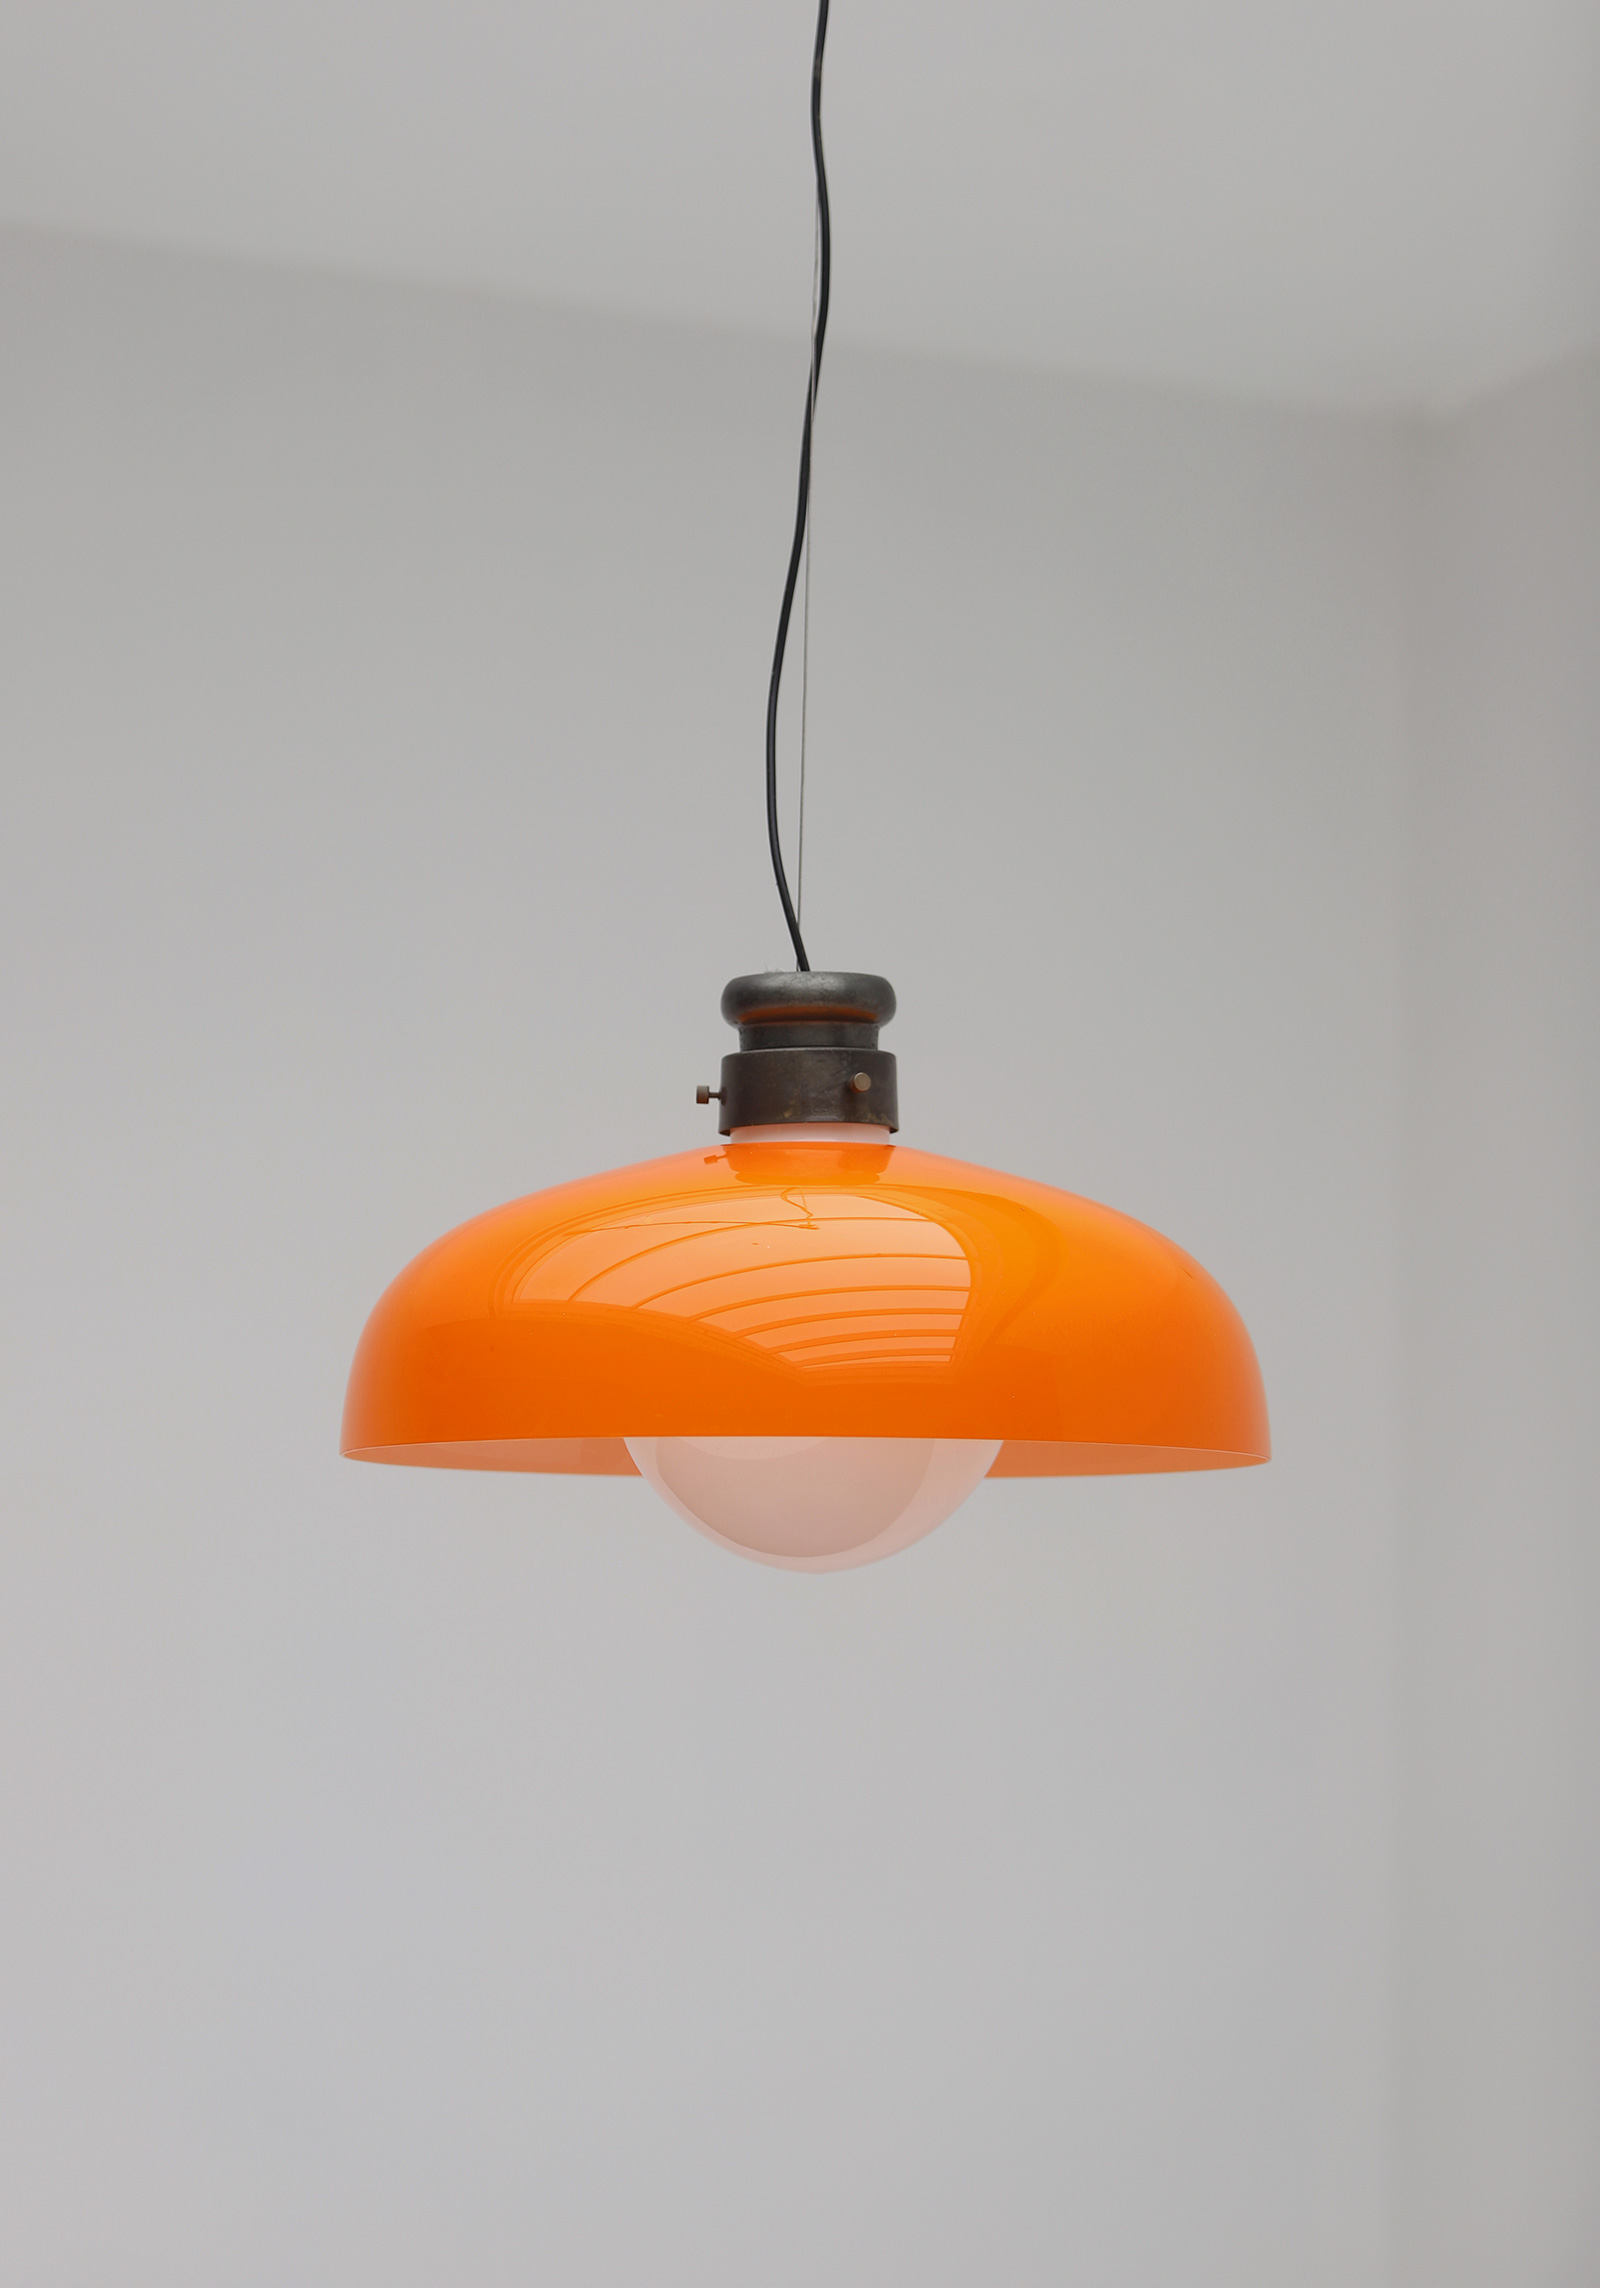 Pendant Lamp by Alessandro Pianon for Vistosiimage 1